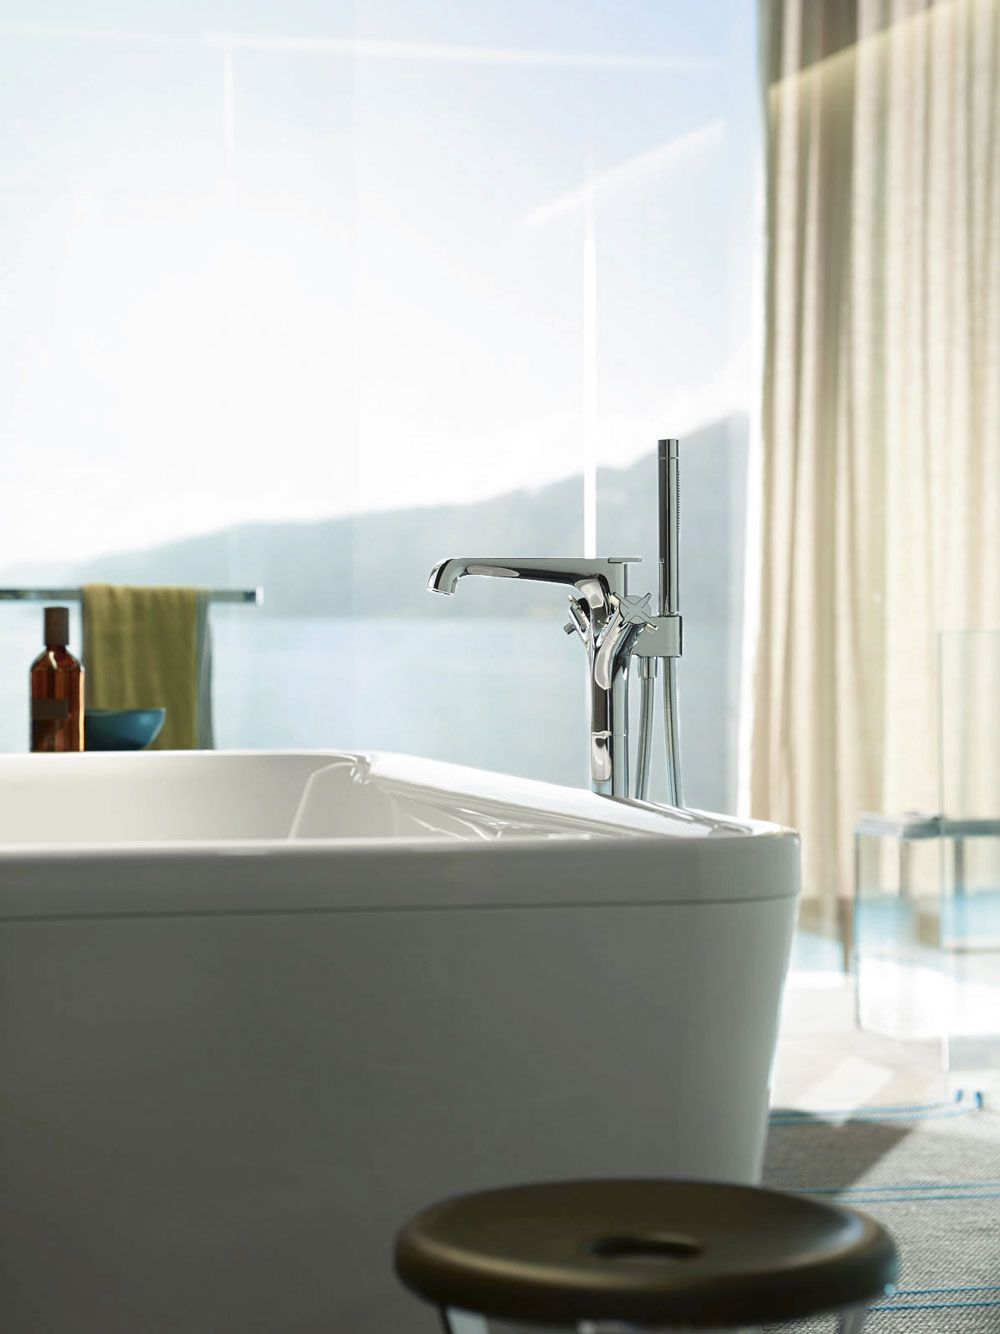 Axor Citterio E Freestanding Tub Filler | bathroom remodel ...